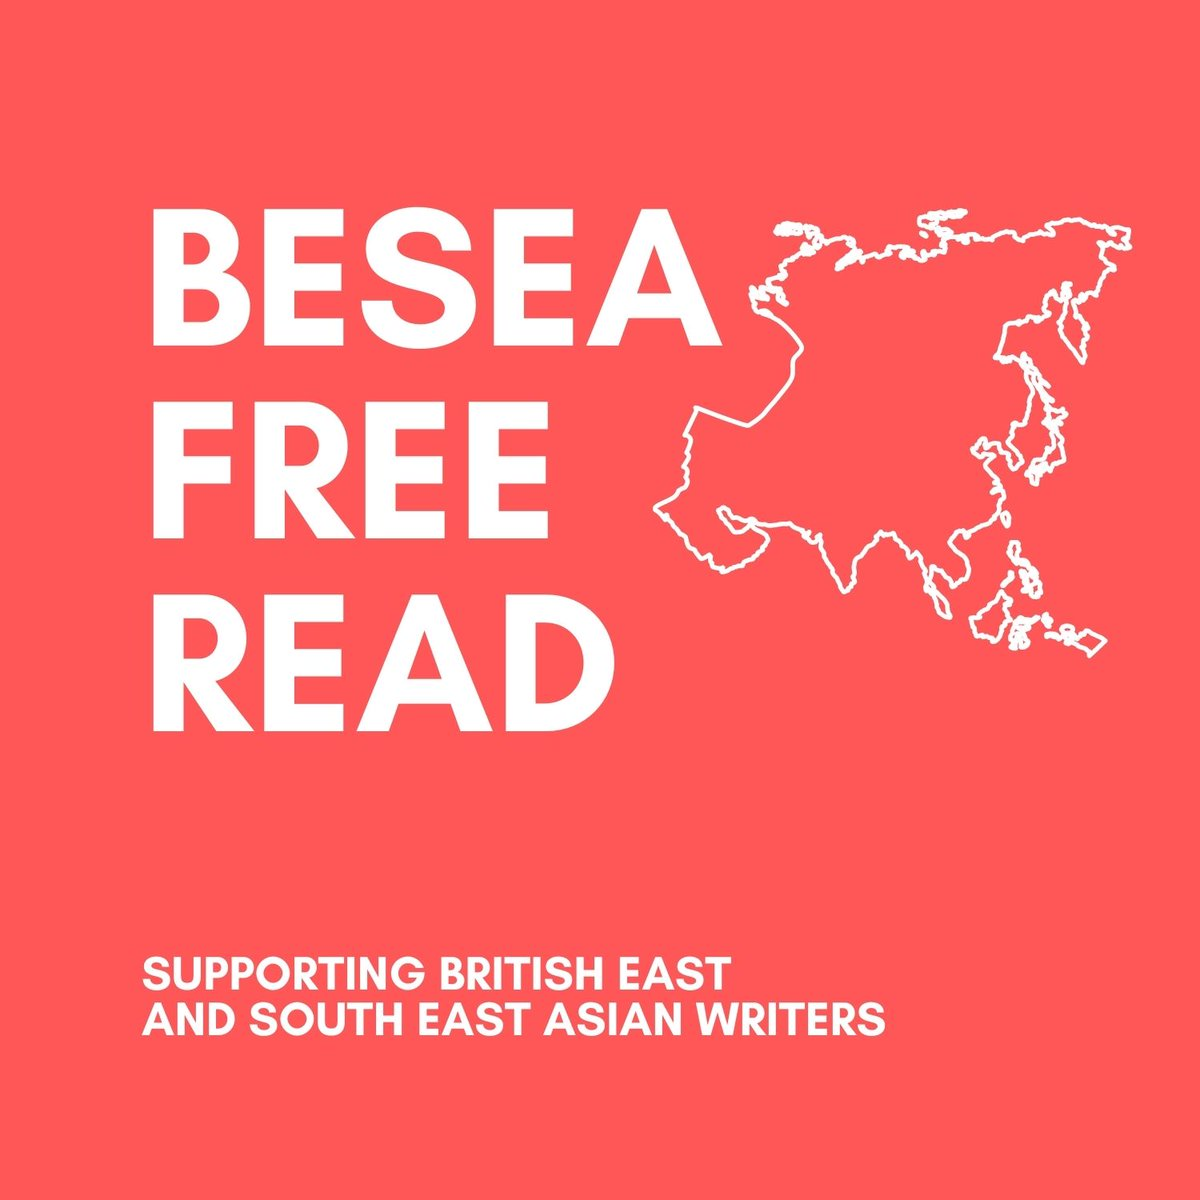 British East Asian and South East Asian writers working on full-length fiction projects (novels or short story collections), we would love to hear from you! We are offering a free assessment + one-to-one with a TLC editor, to help you progress: literaryconsultancy.co.uk/2020/10/besea-…